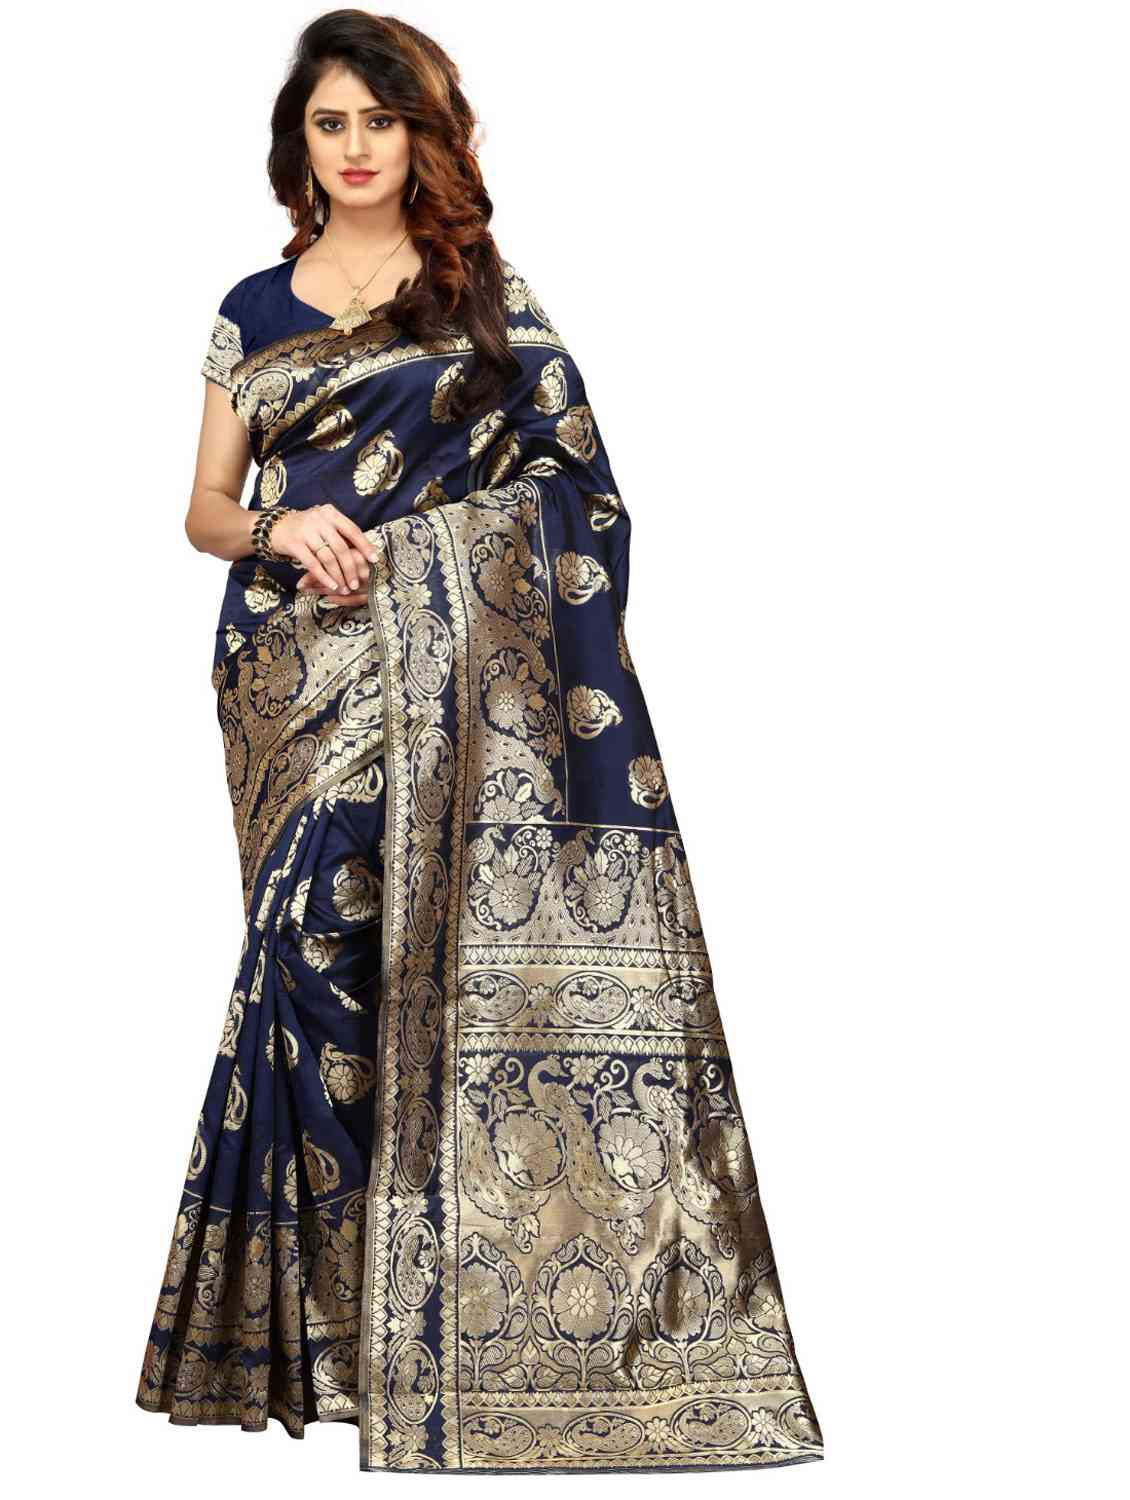 Neavy Blue Colored Jacquard Silk Saree pari SD1601